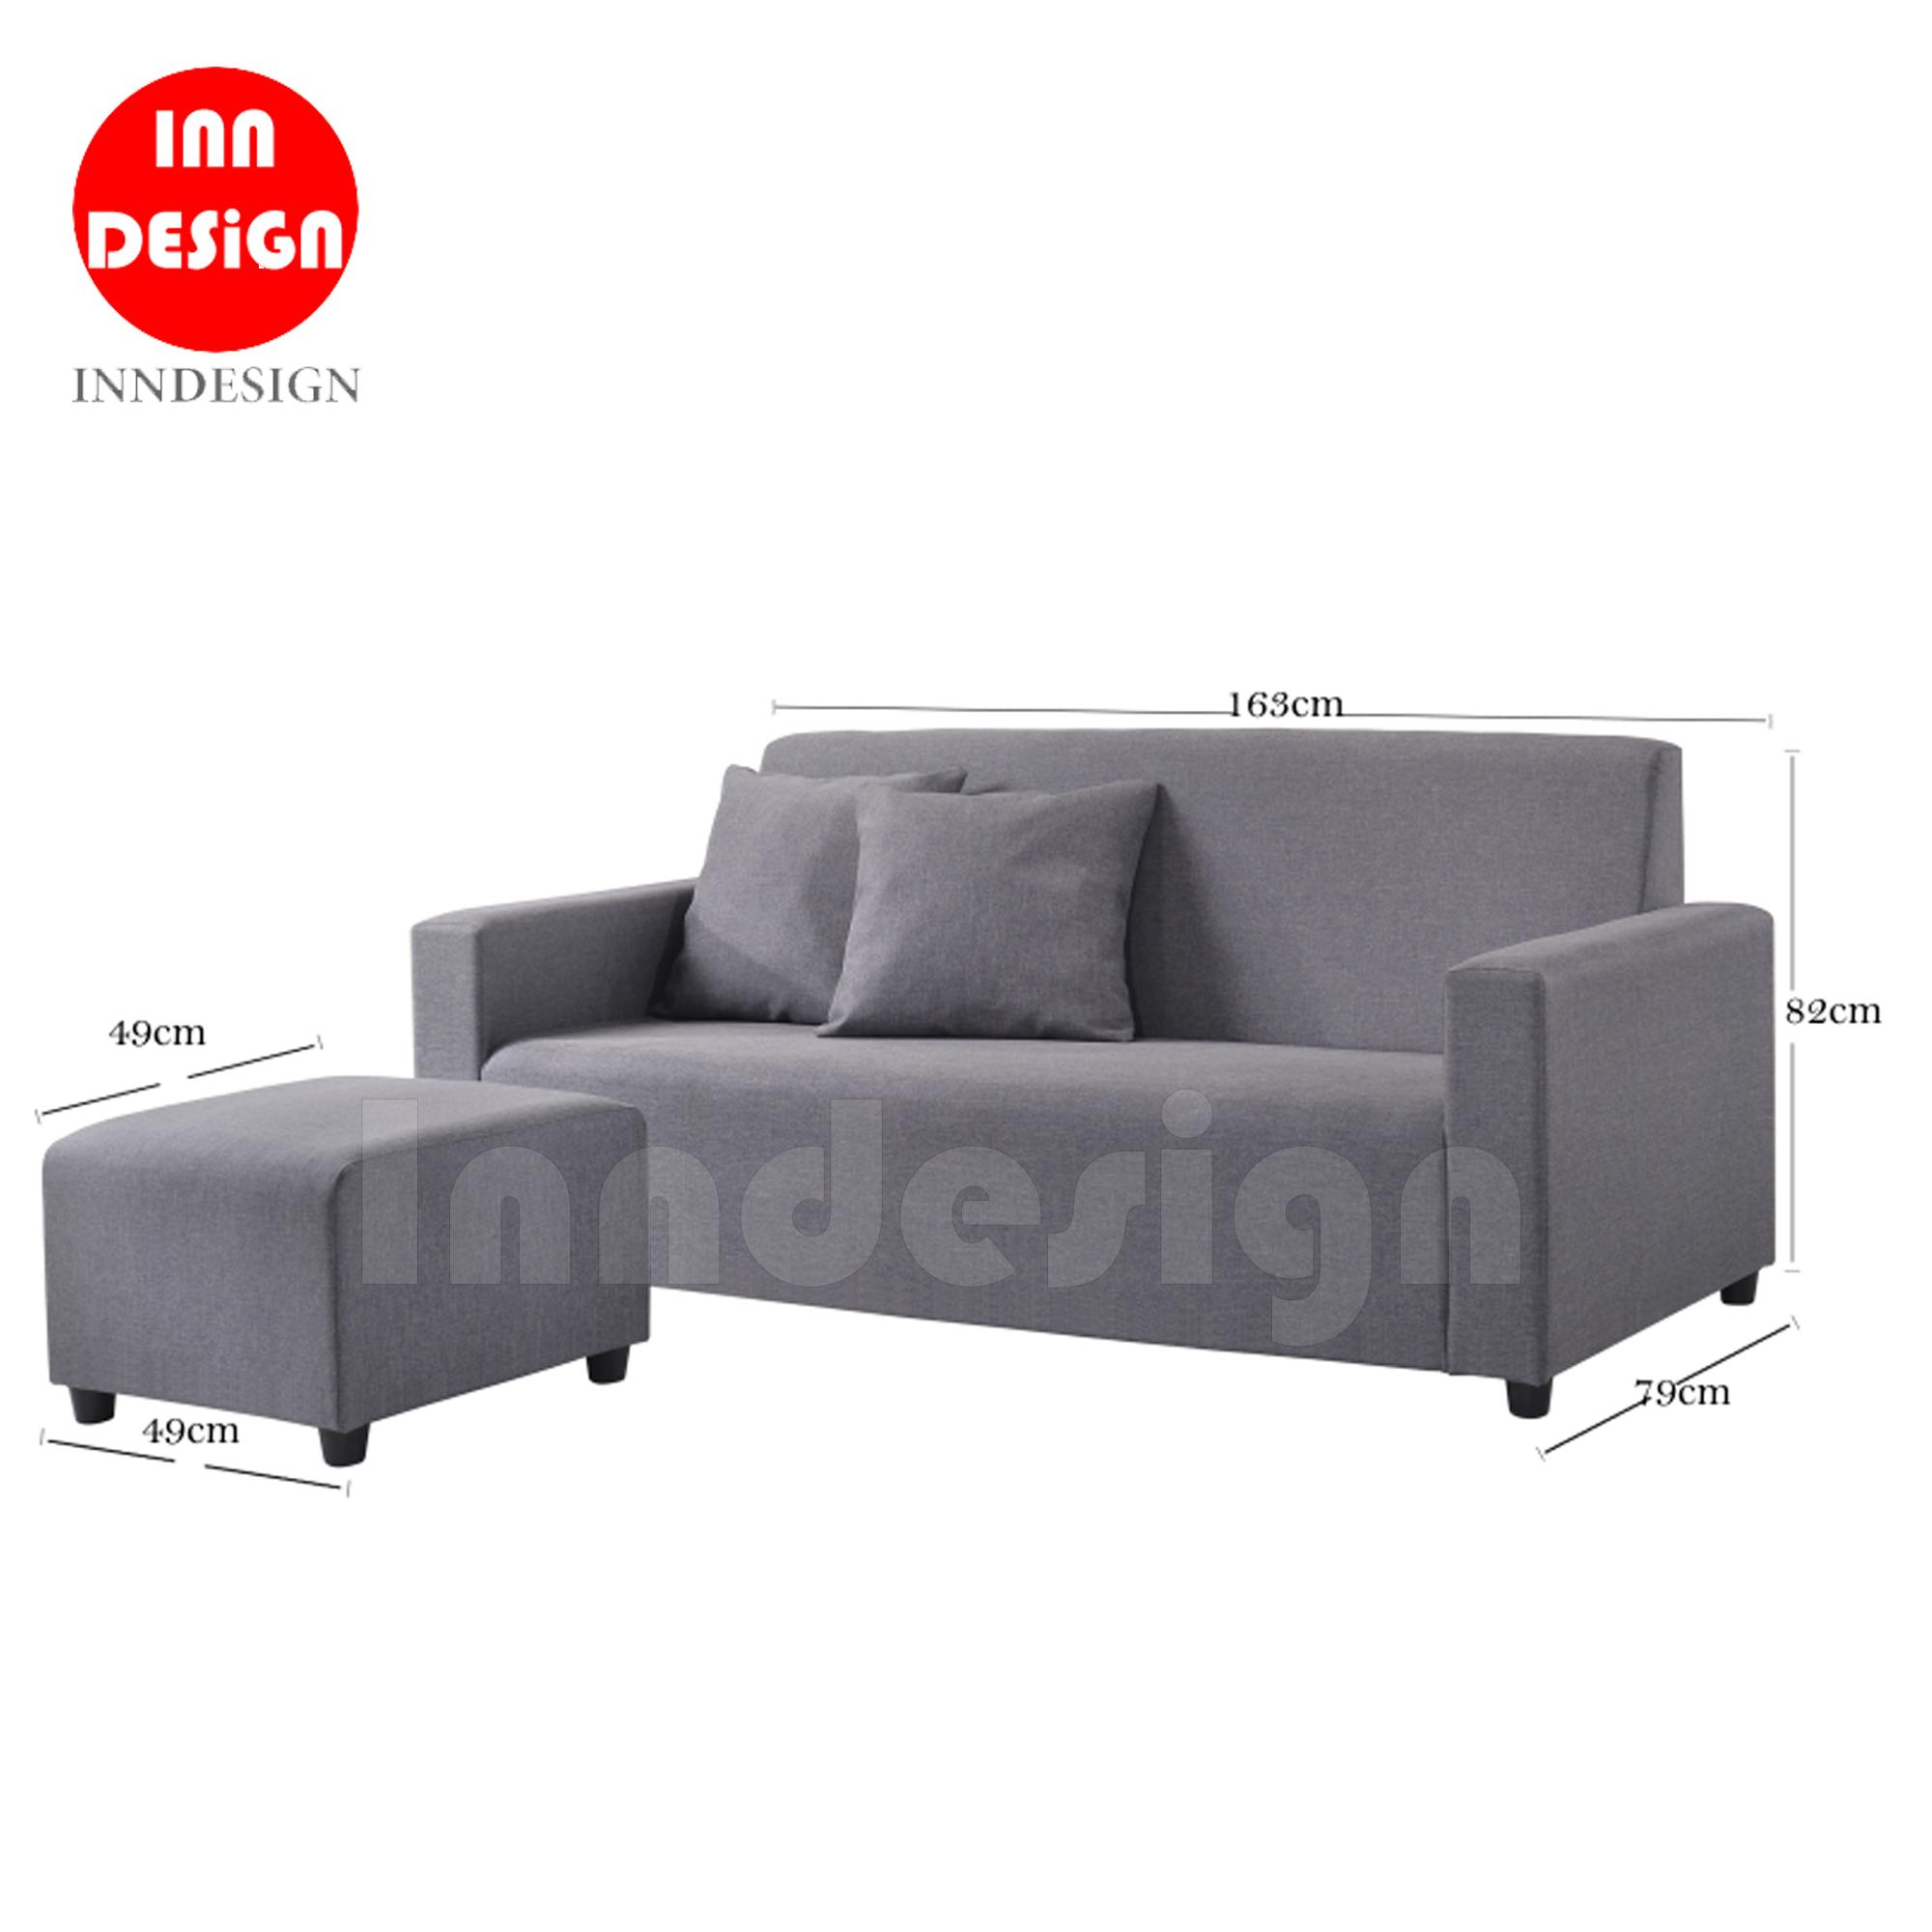 Annica L Shape 3 Seaters Fabric Sofa with Stool (Grey)